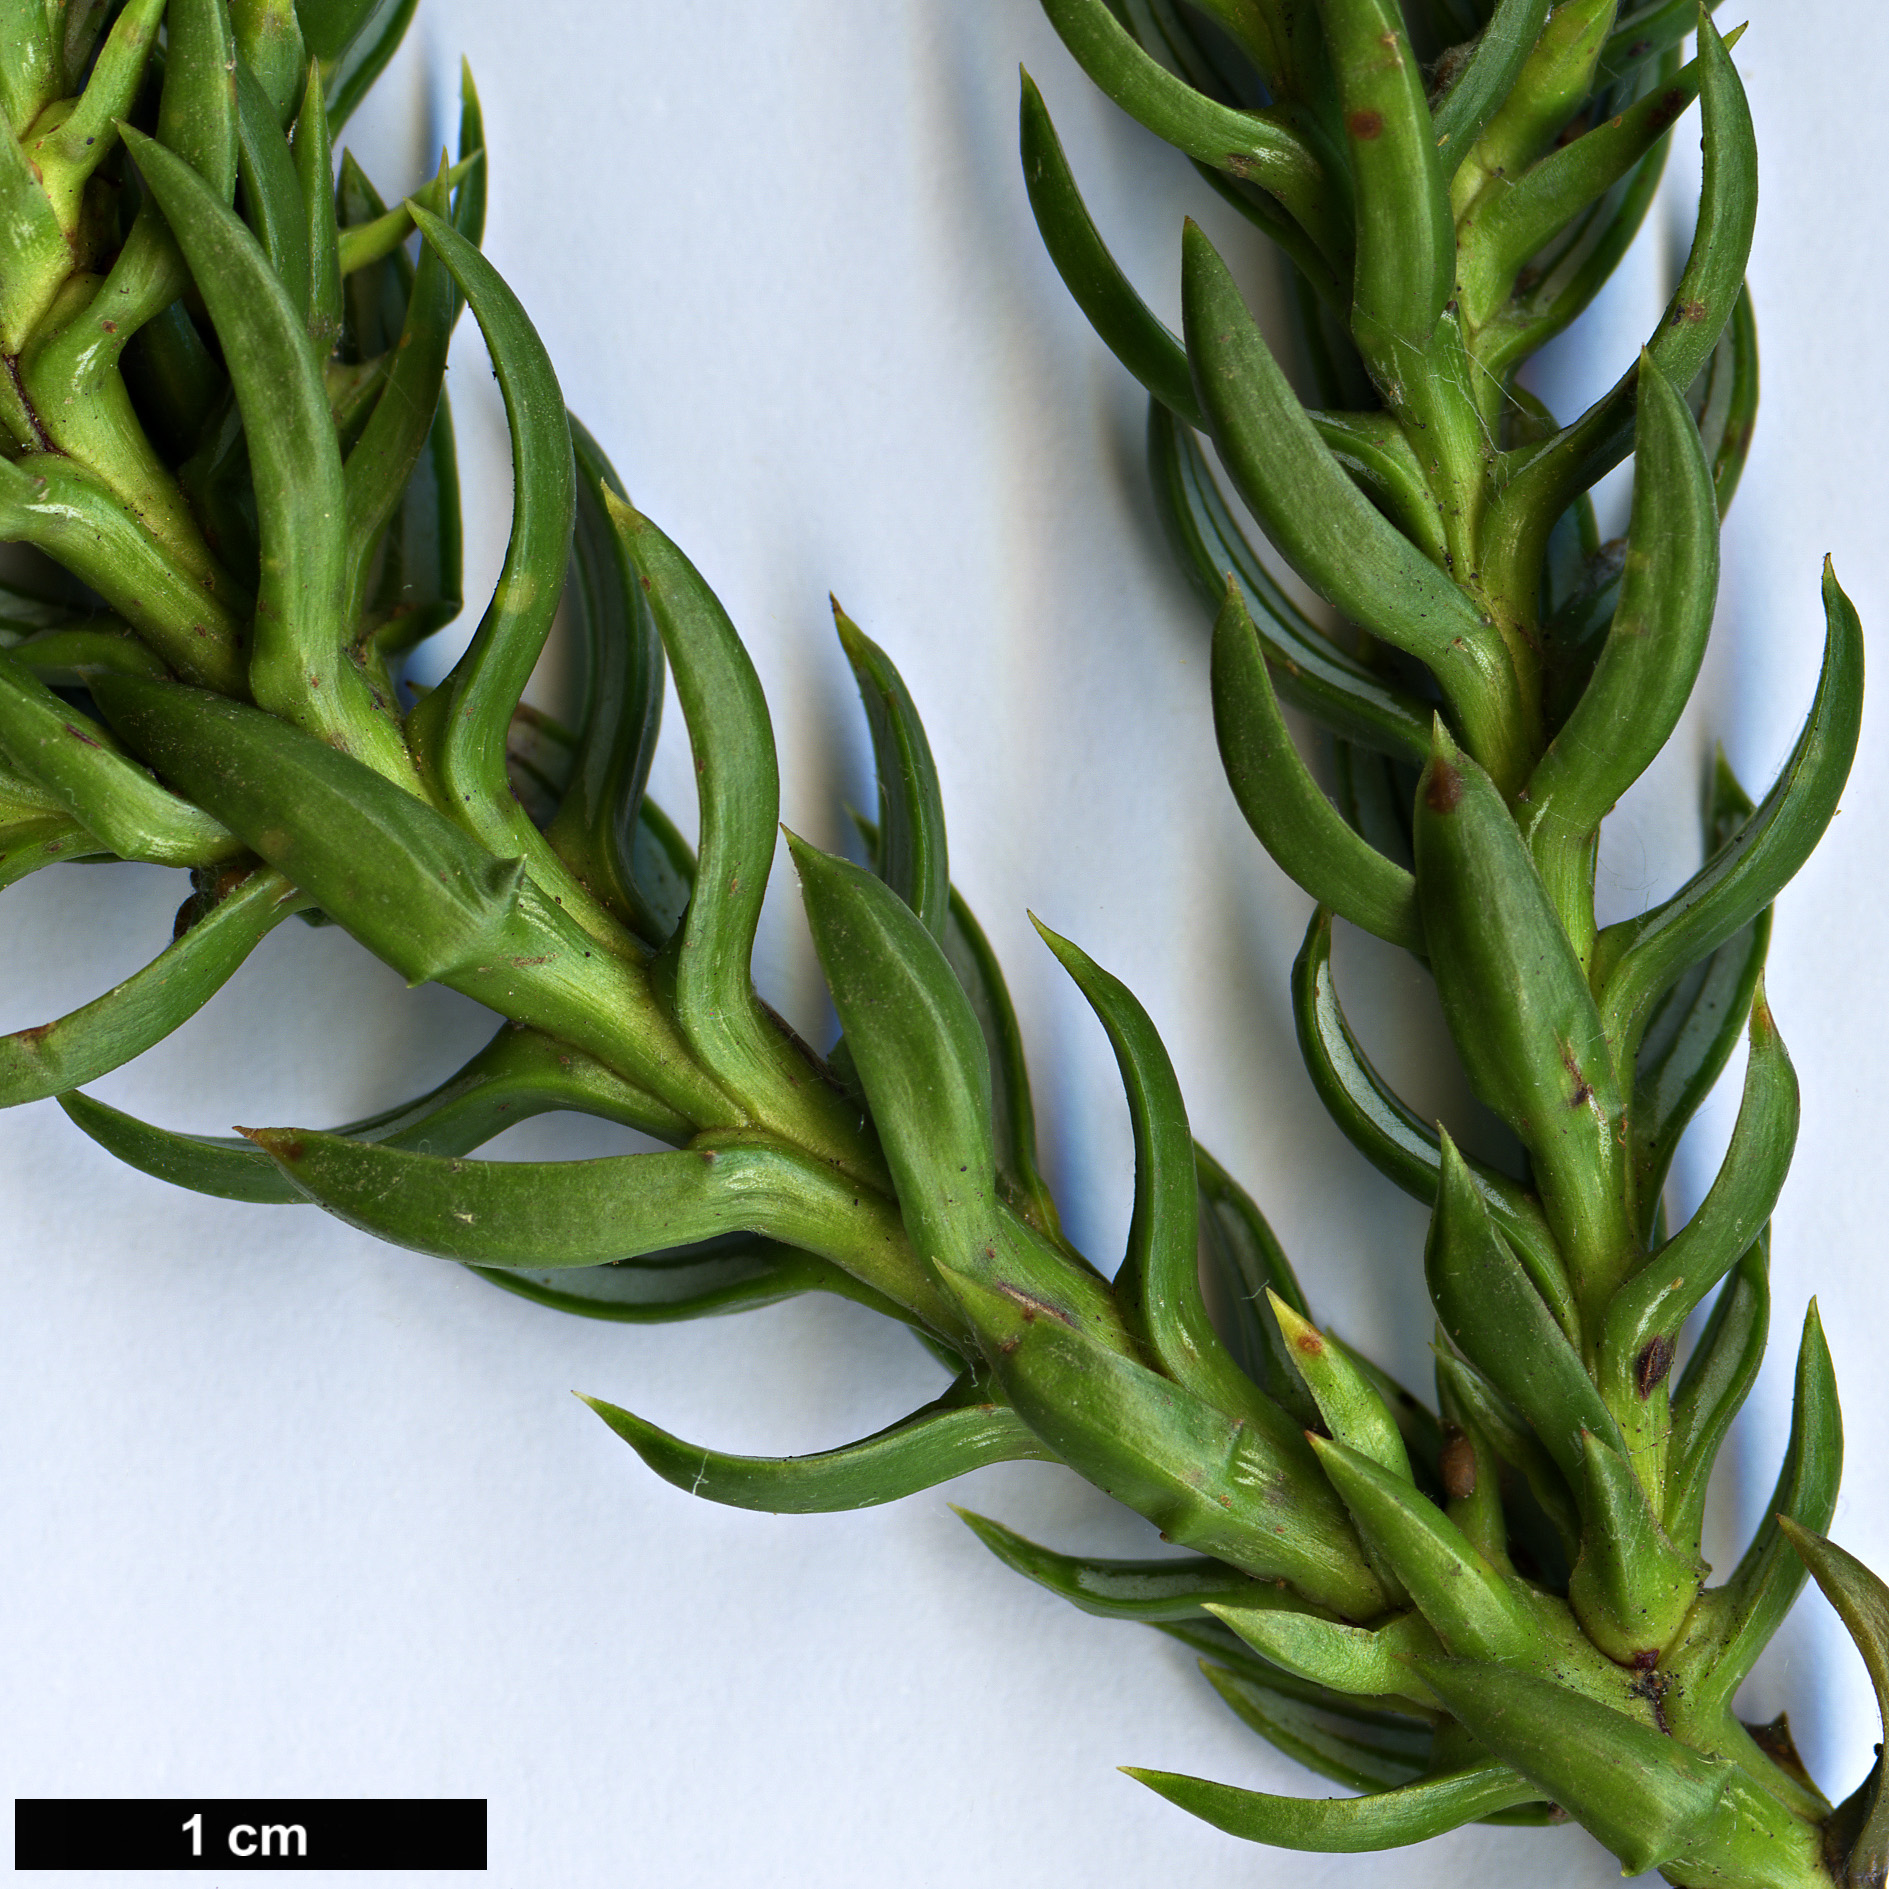 High resolution image: Family: Cupressaceae - Genus: Athrotaxis - Taxon: selaginoides